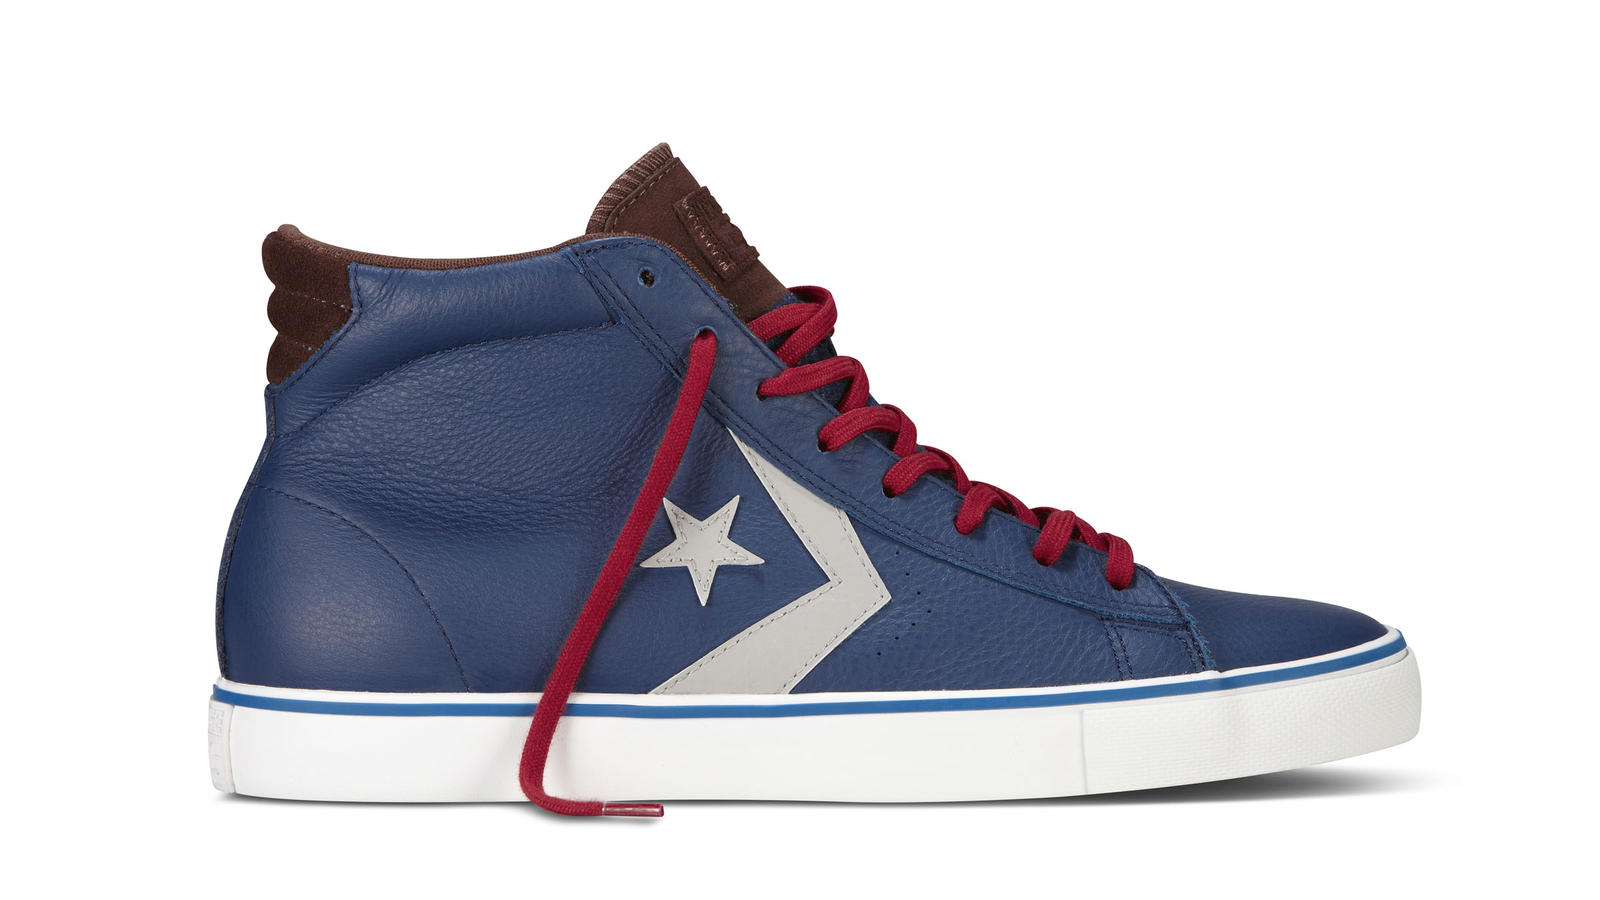 Converse Cons Pro Leather Vulc Poseidon Original